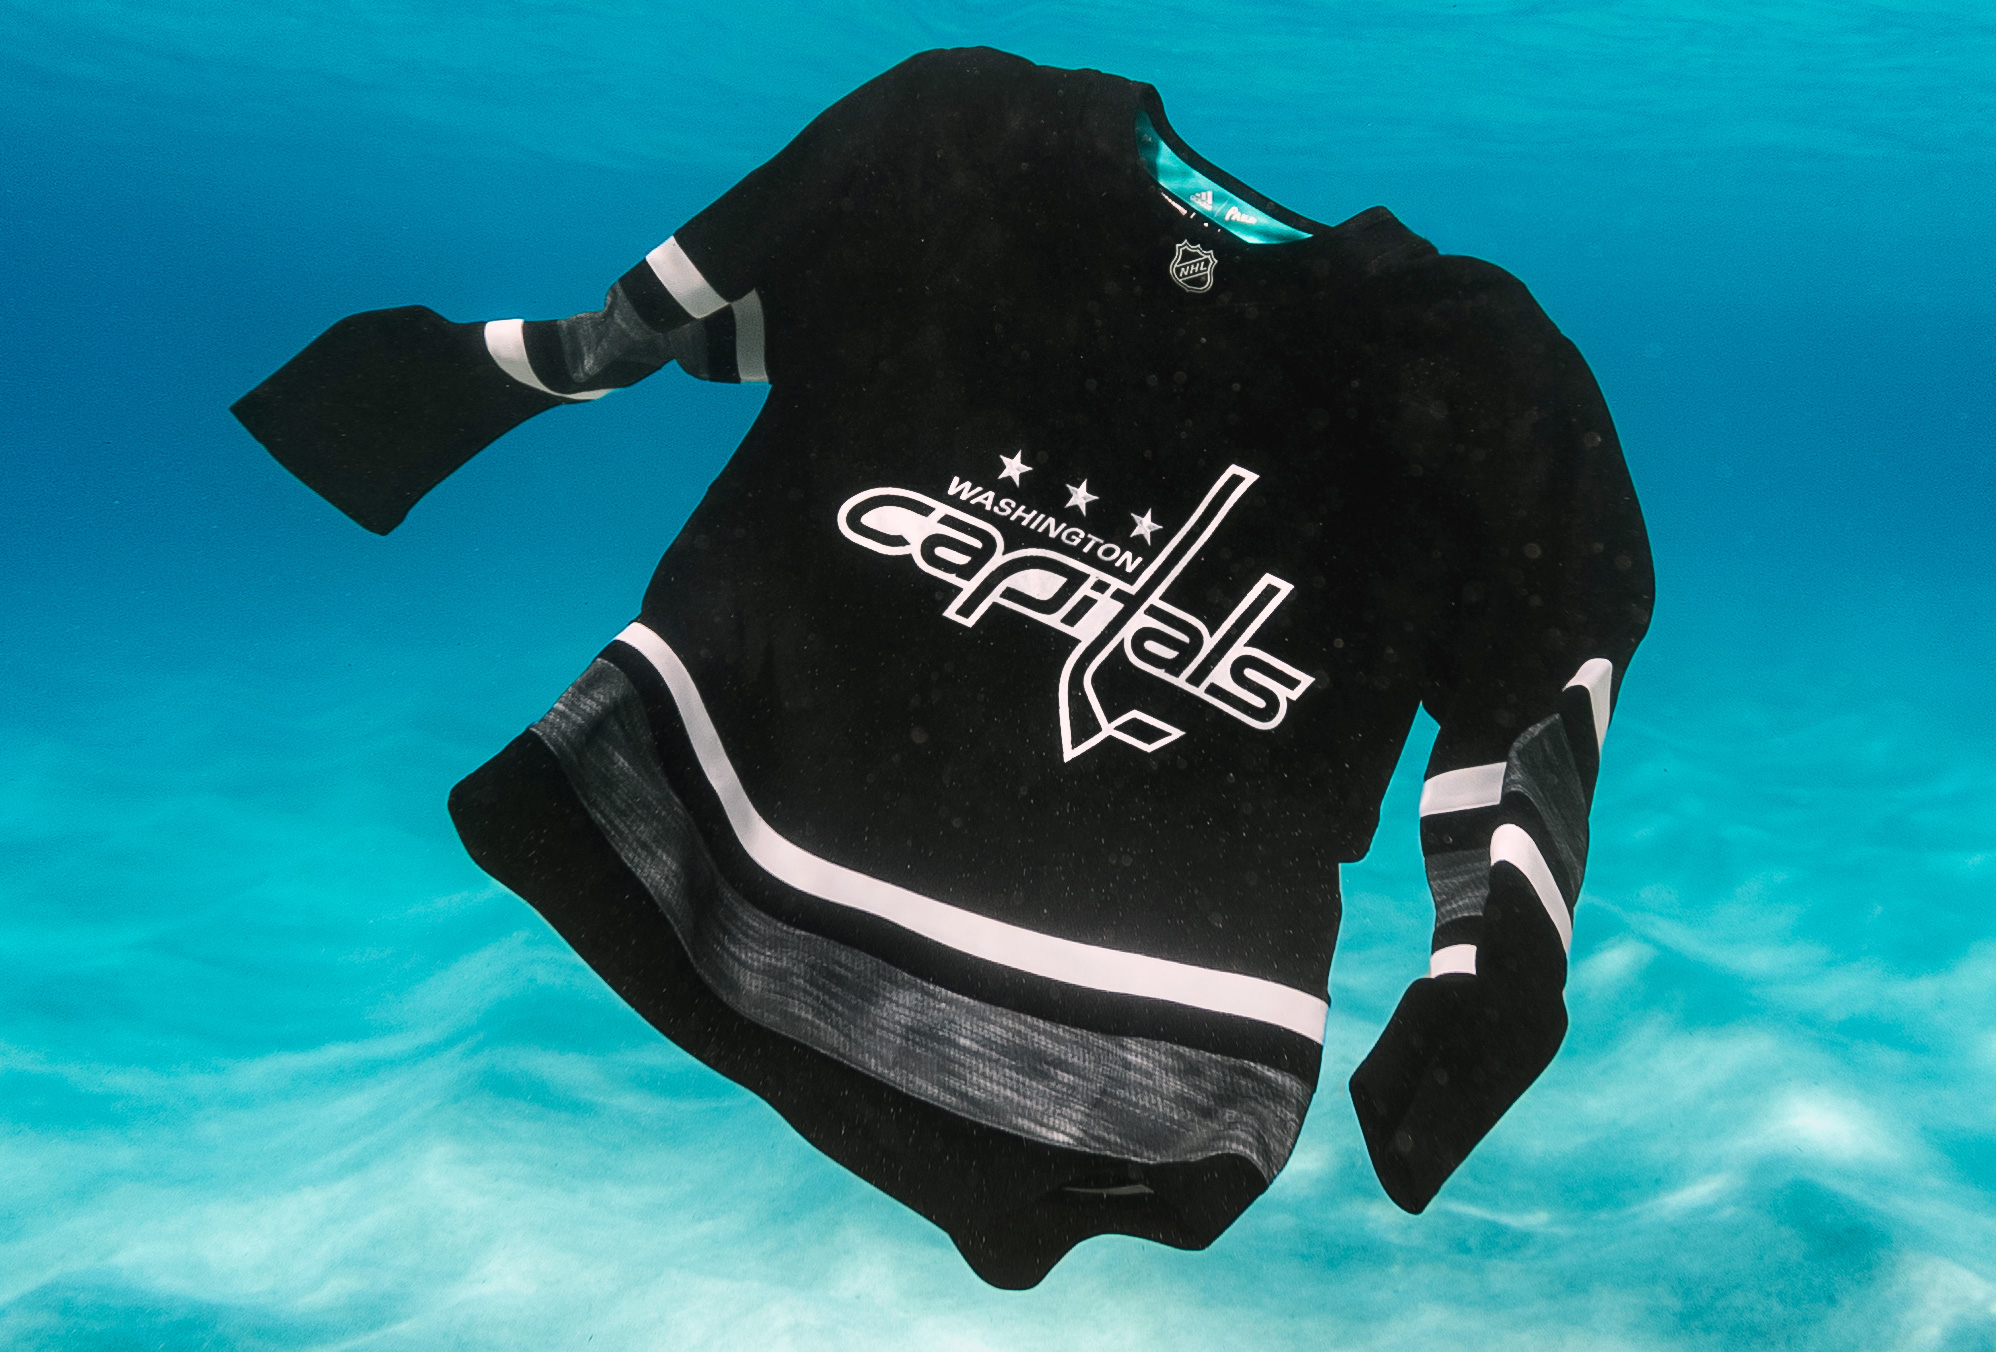 NHL Releases All-Star Game Jerseys, Made From Oceanic Debris